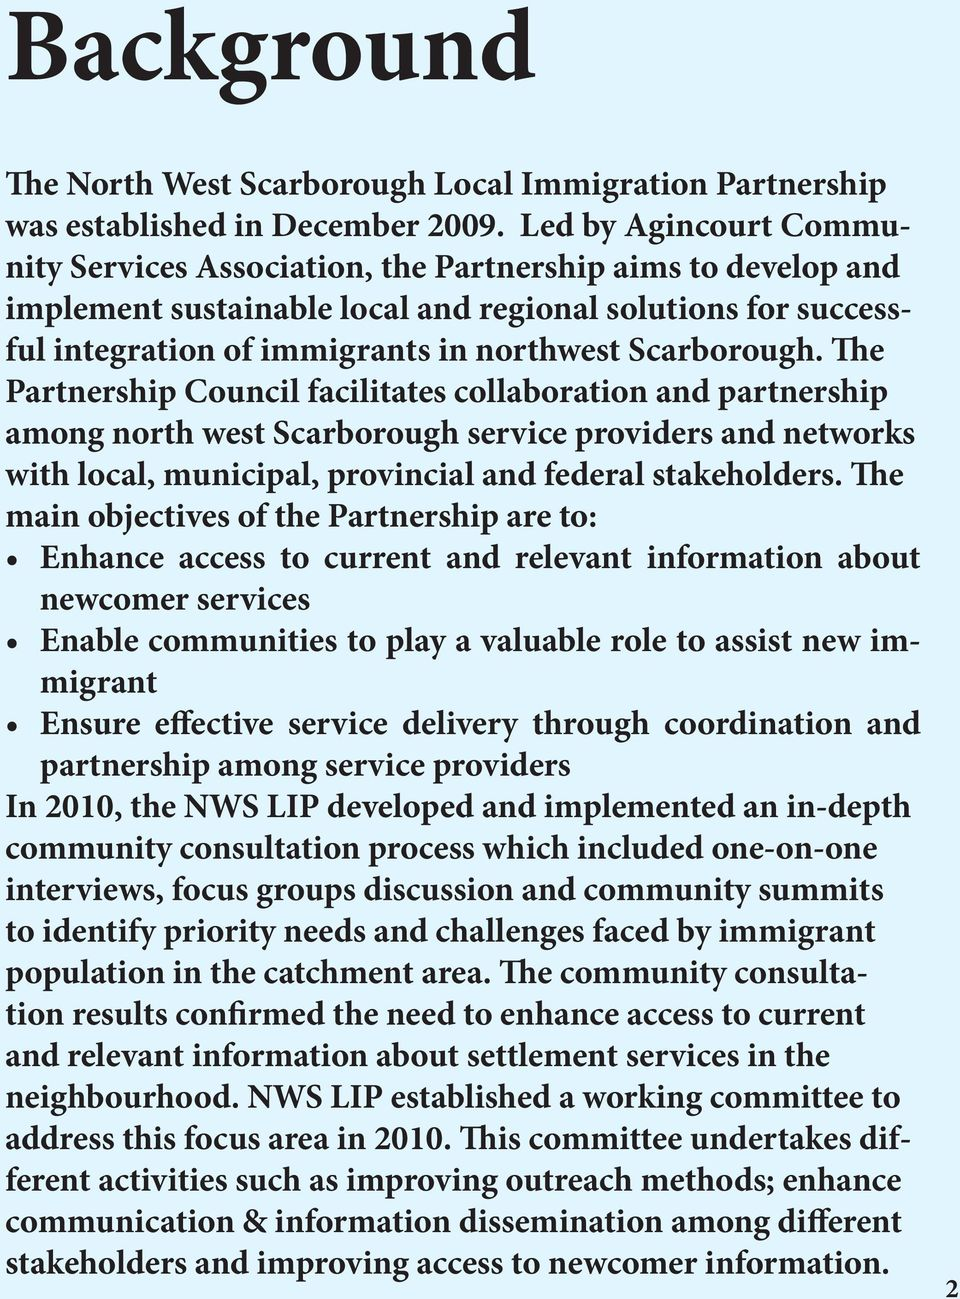 Scarborough. The Partnership Council facilitates collaboration and partnership among north west Scarborough service providers and networks with local, municipal, provincial and federal stakeholders.